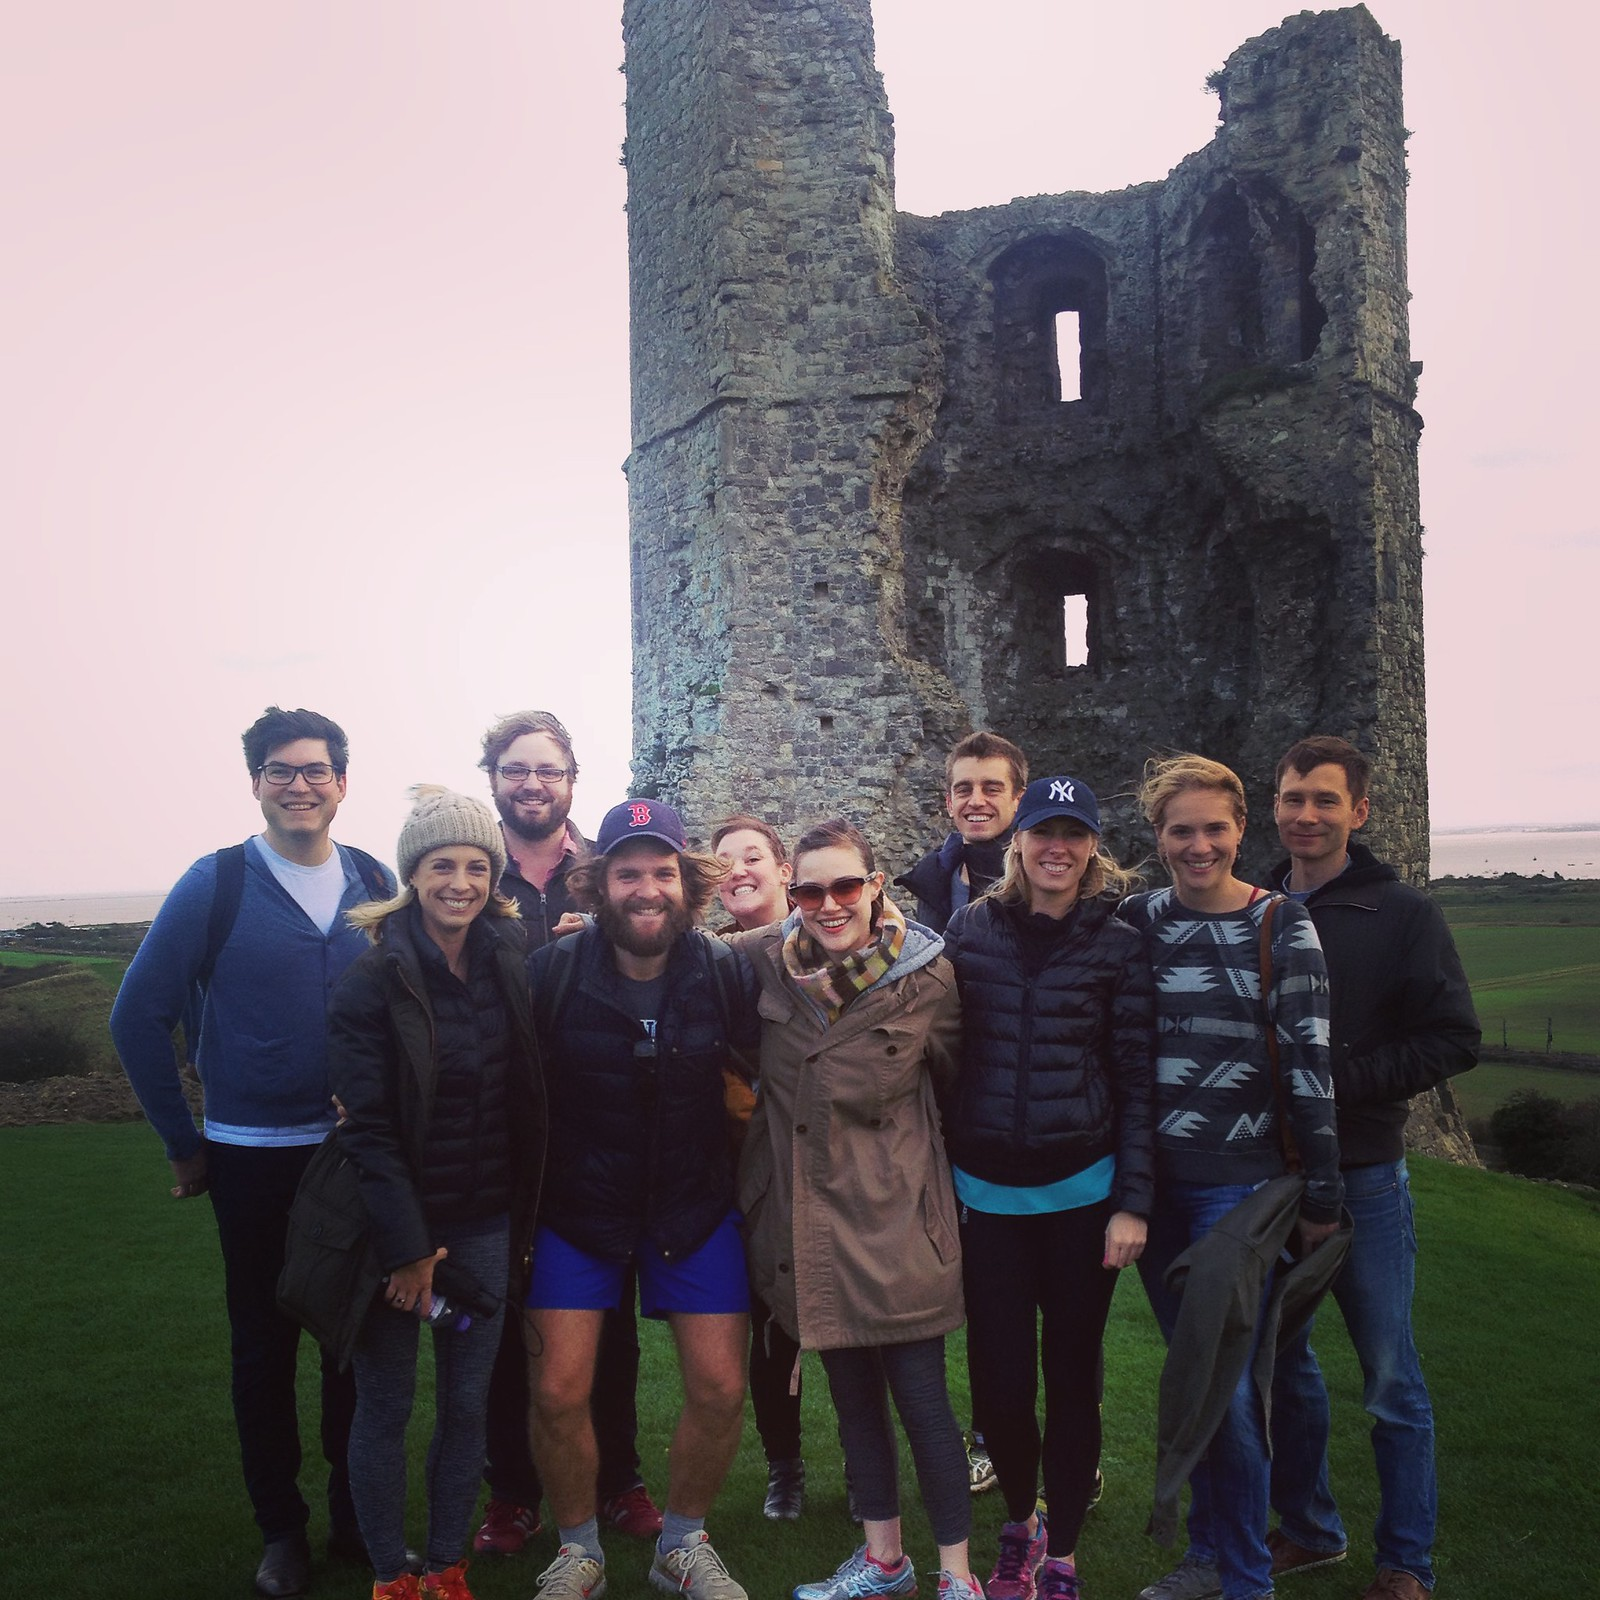 2015-11-15 13.09.38-1 Hadleigh Castle, Benfleet to Leigh on Sea, SWC Walk, Short Walk 14